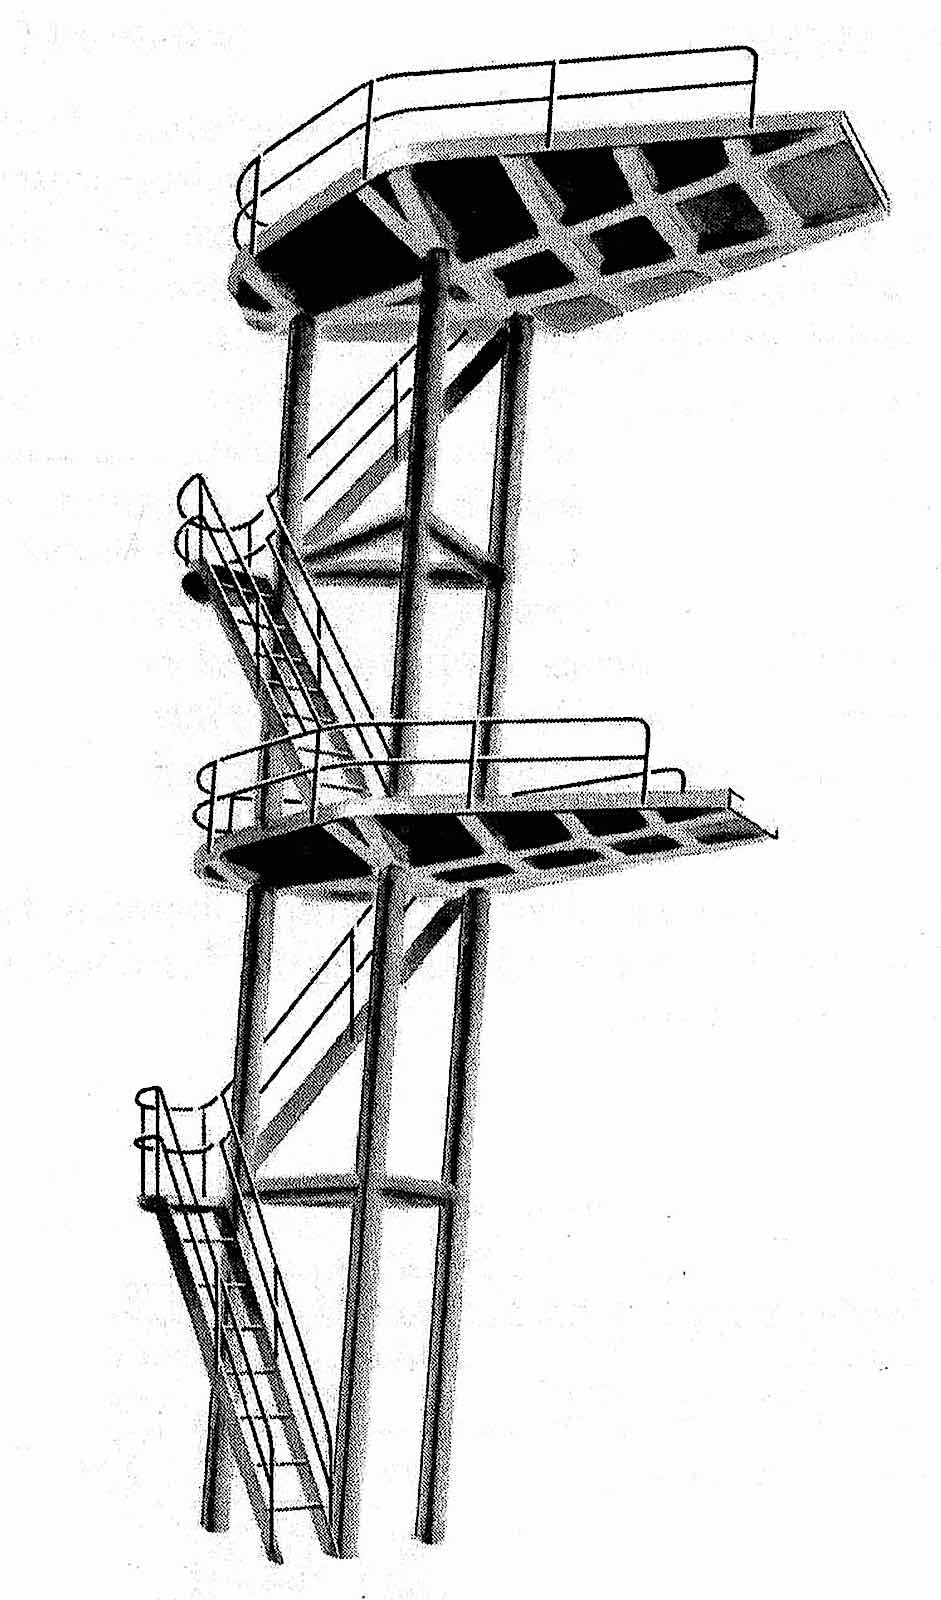 a high diving tower 1960s?